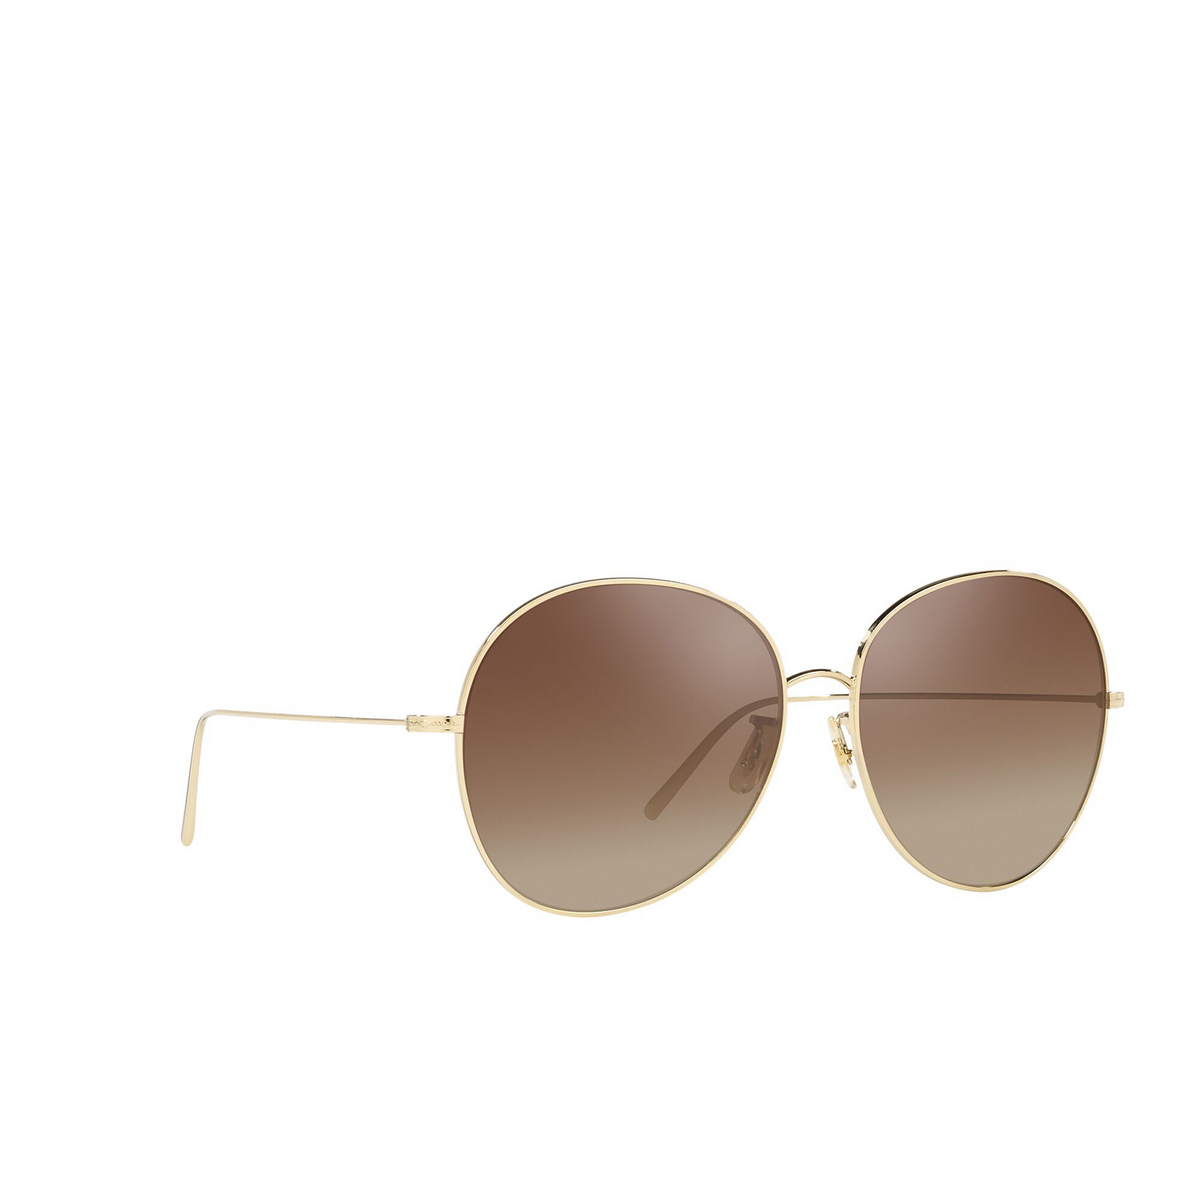 Oliver Peoples® Butterfly Sunglasses: Ysela OV1289S color Soft Gold 5035Q1 - three-quarters view.